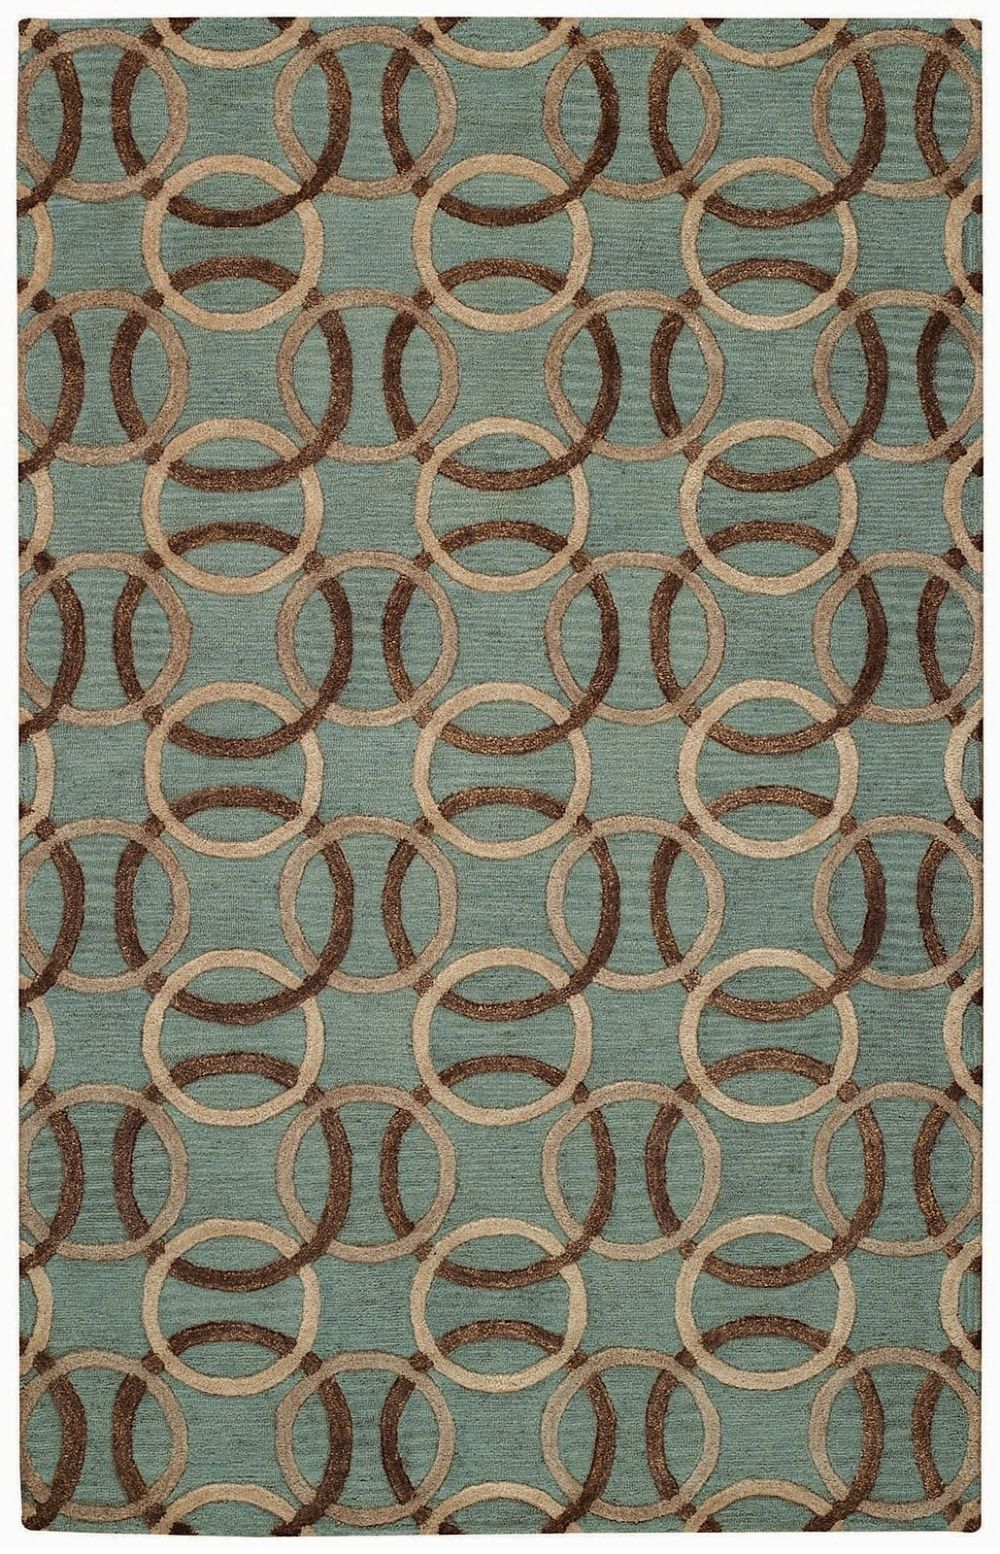 capel desert plateau-ringlets contemporary area rug collection